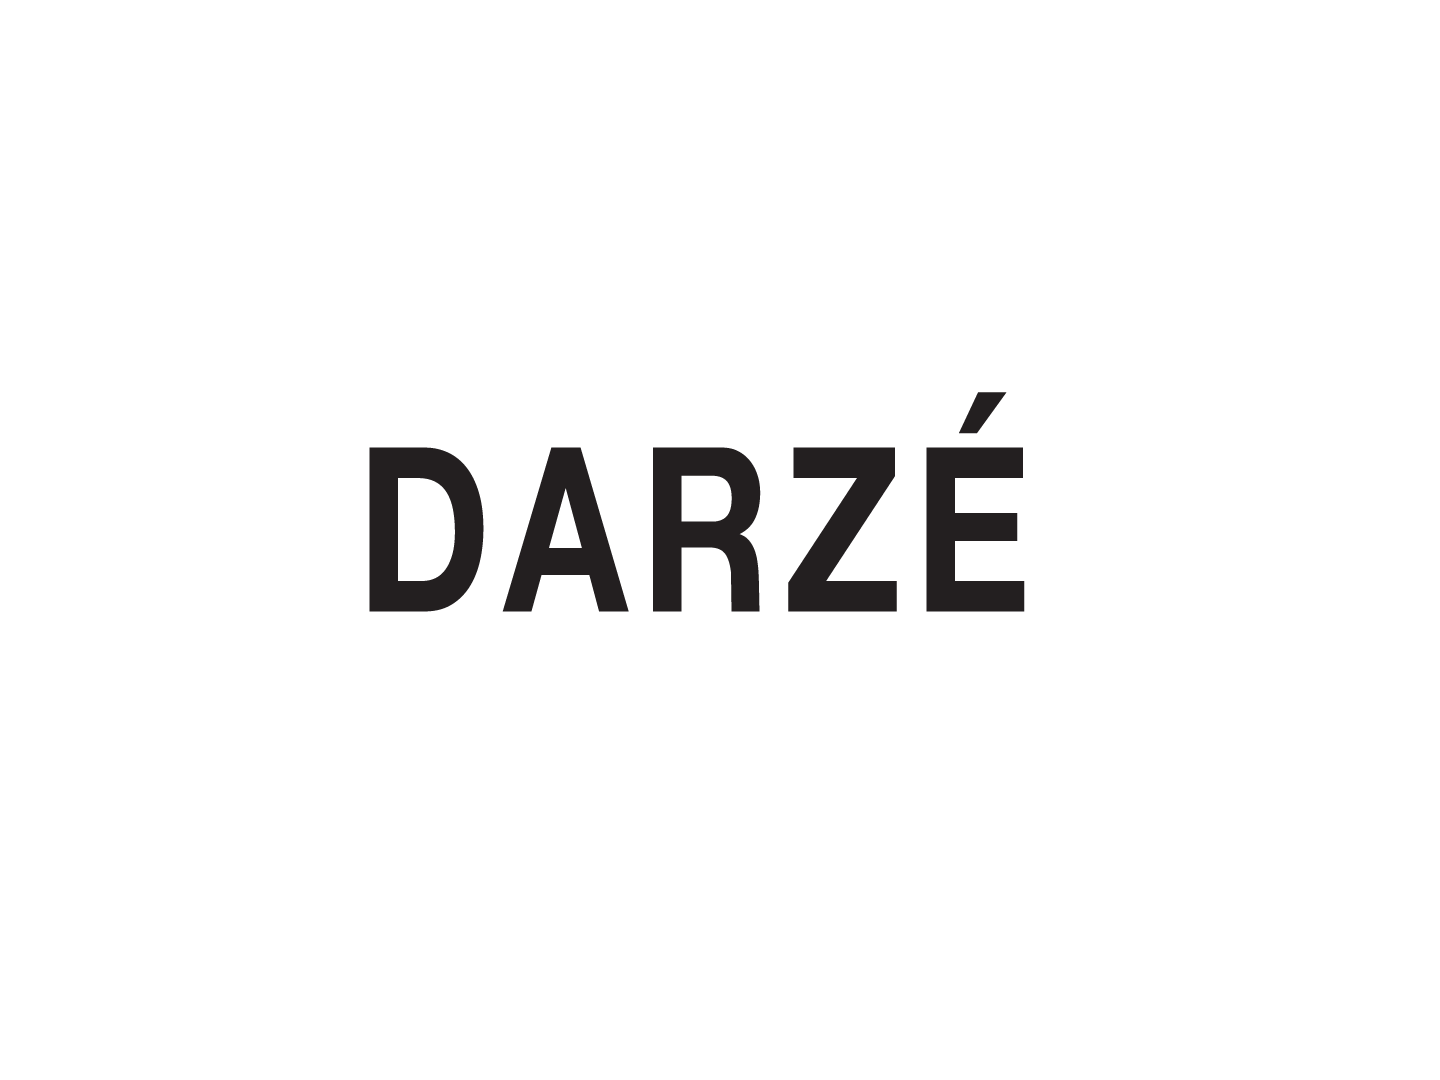 darze-png.png